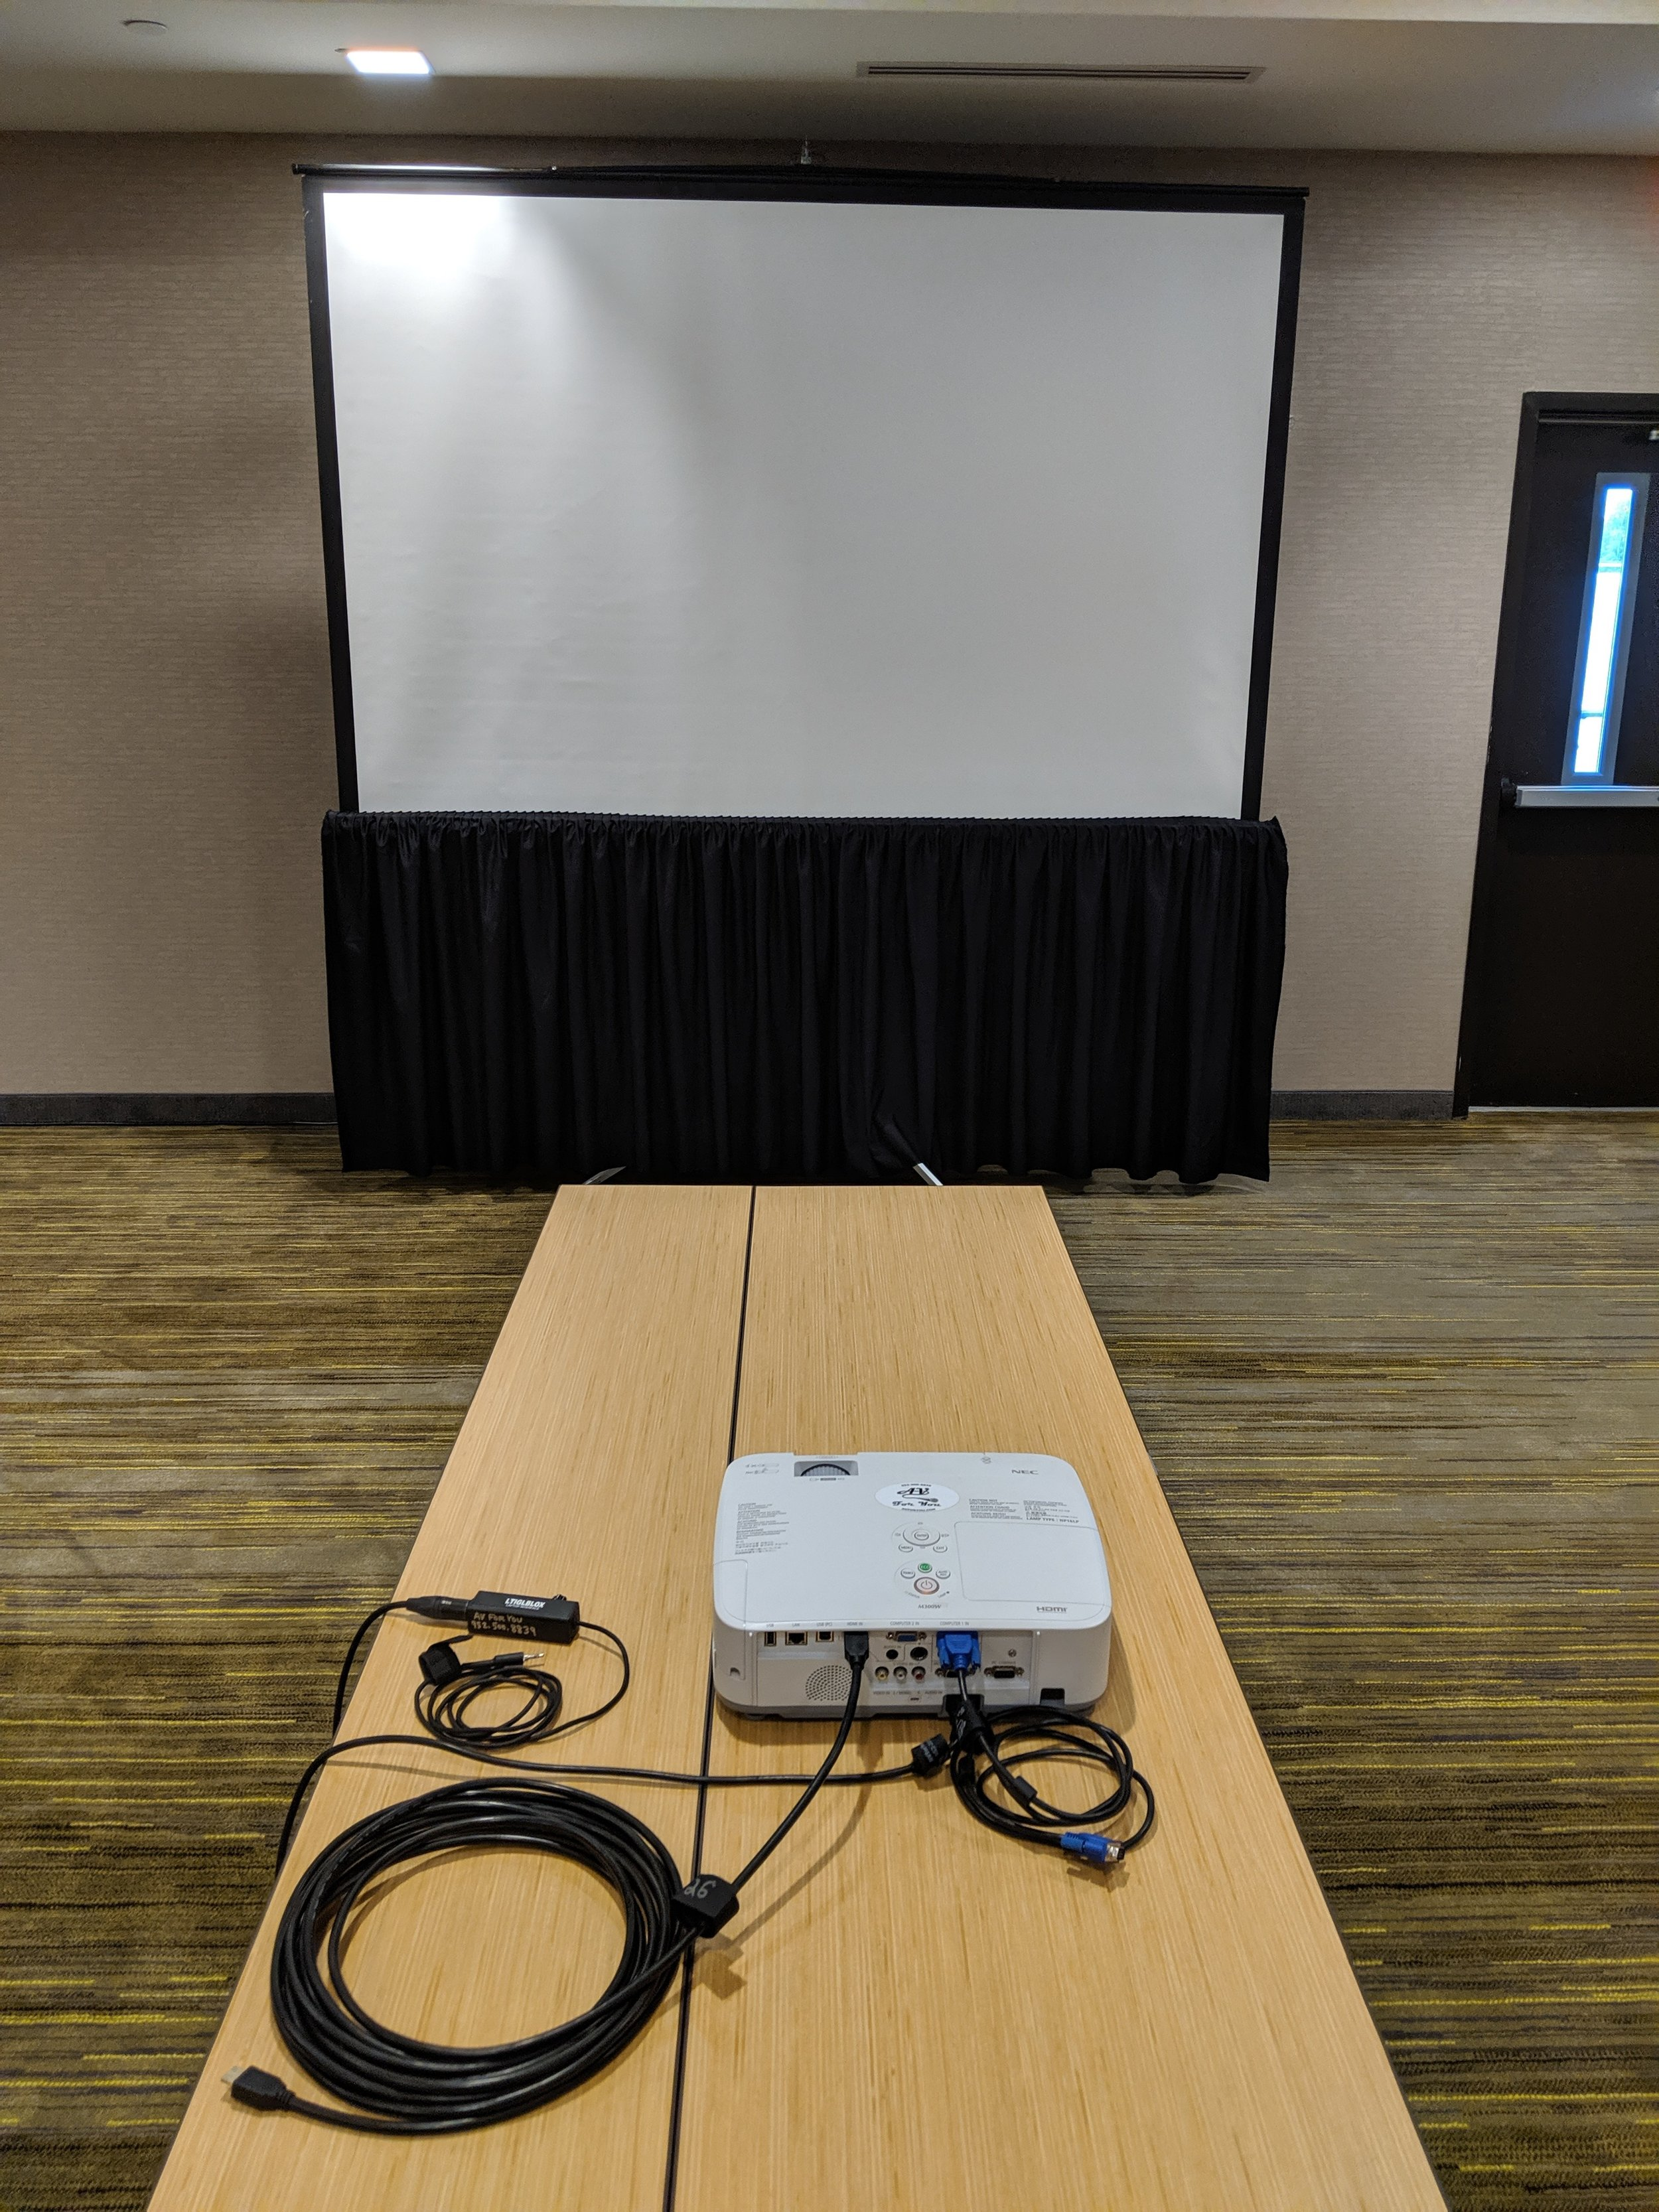 Picture of AV for You Projector and Screen Rental for a Meeting at the Courtyard by Marriott in Woodbury